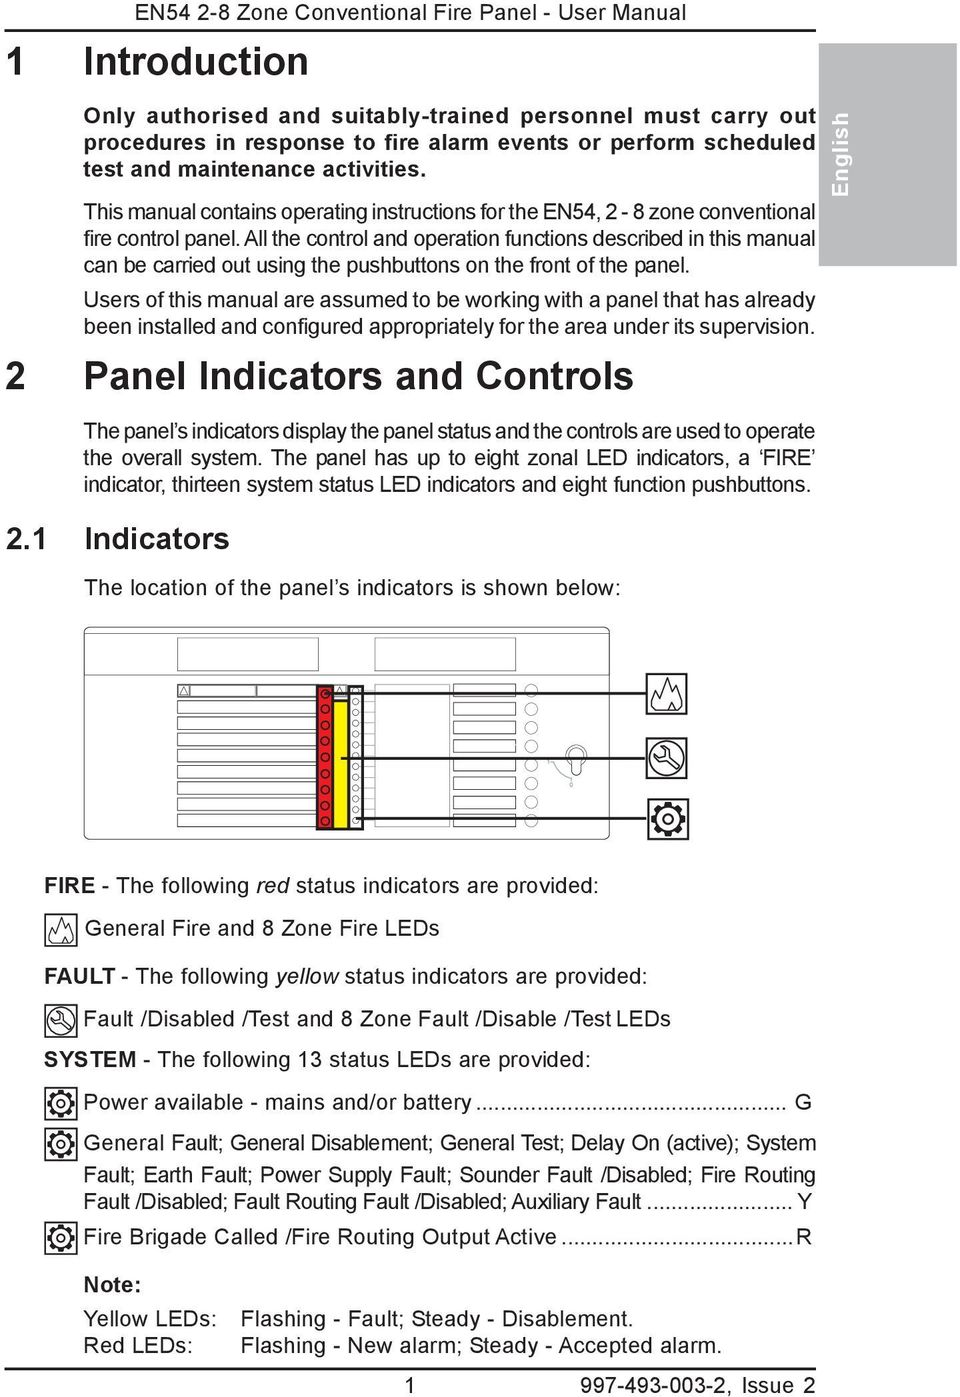 All the control and operation functions described in this manual can be carried out using the pushbuttons on the front of the panel.